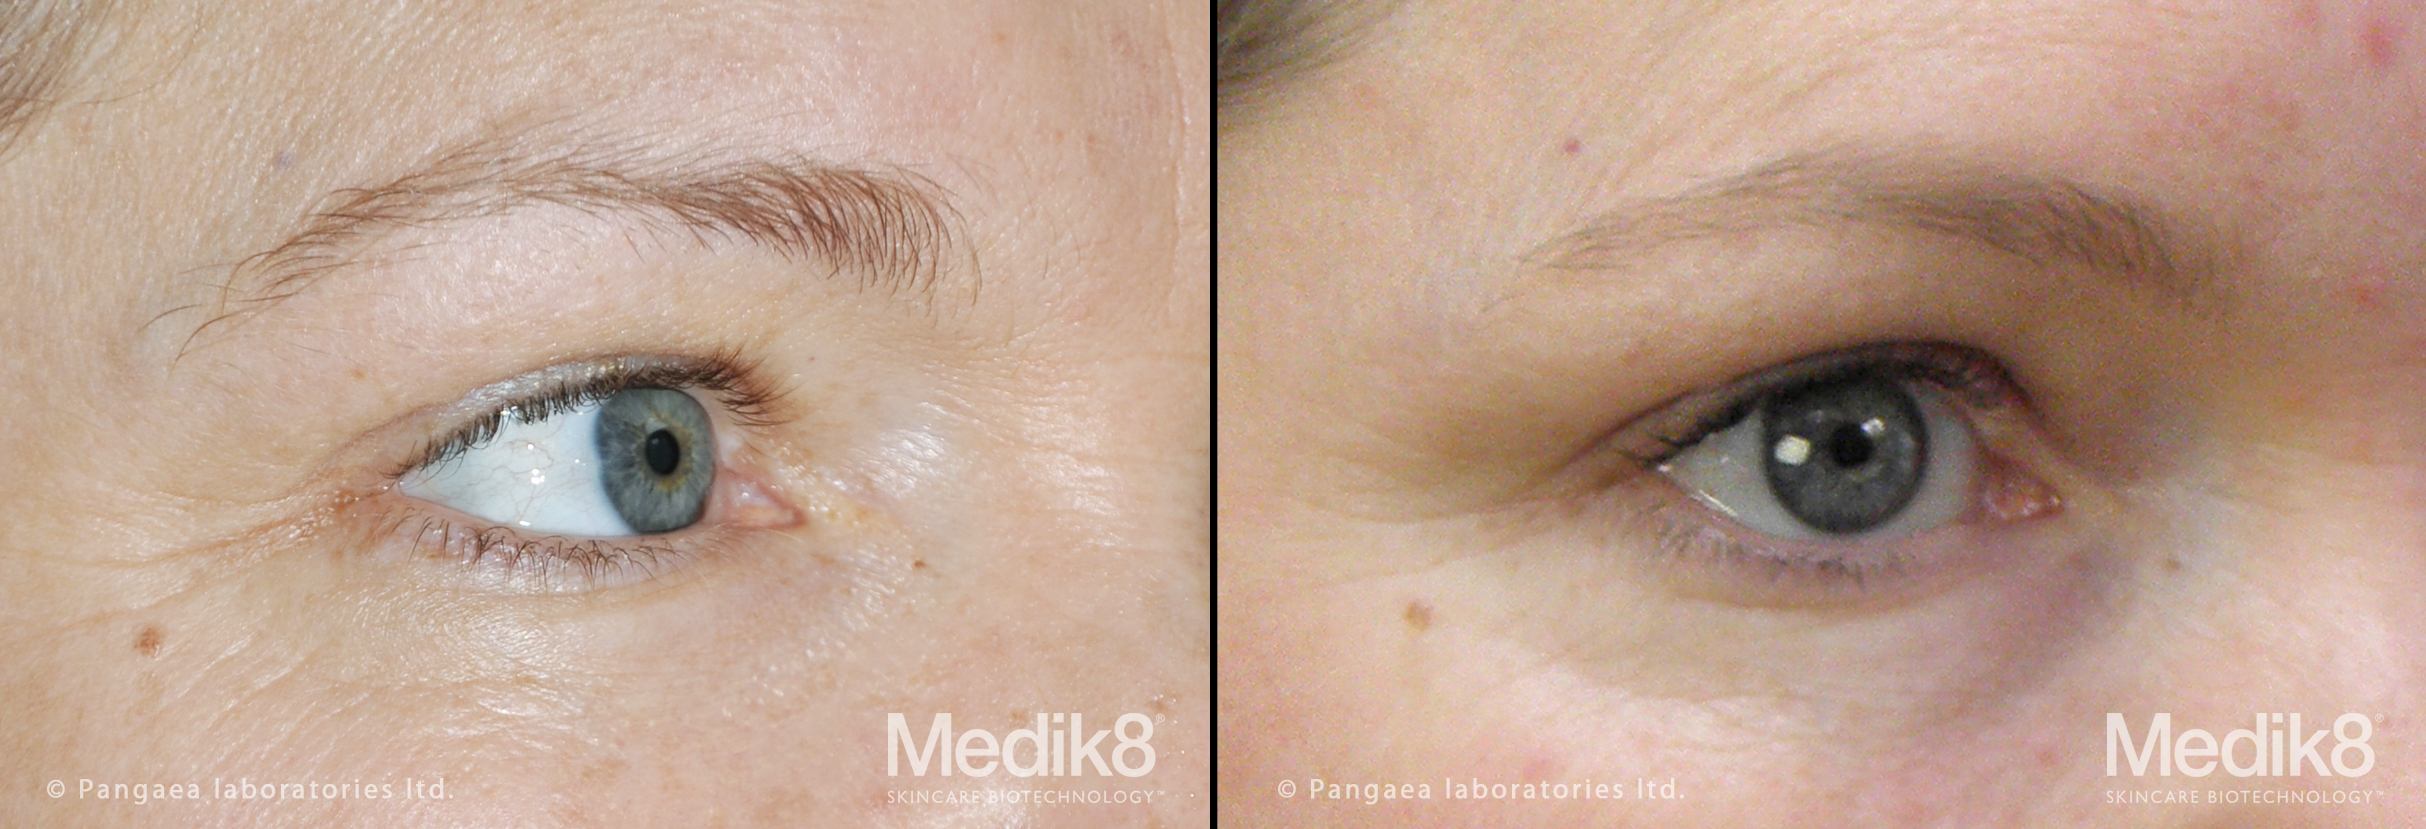 Before and After Medik8 Peels at Perfection Skin Clinic in Norwich